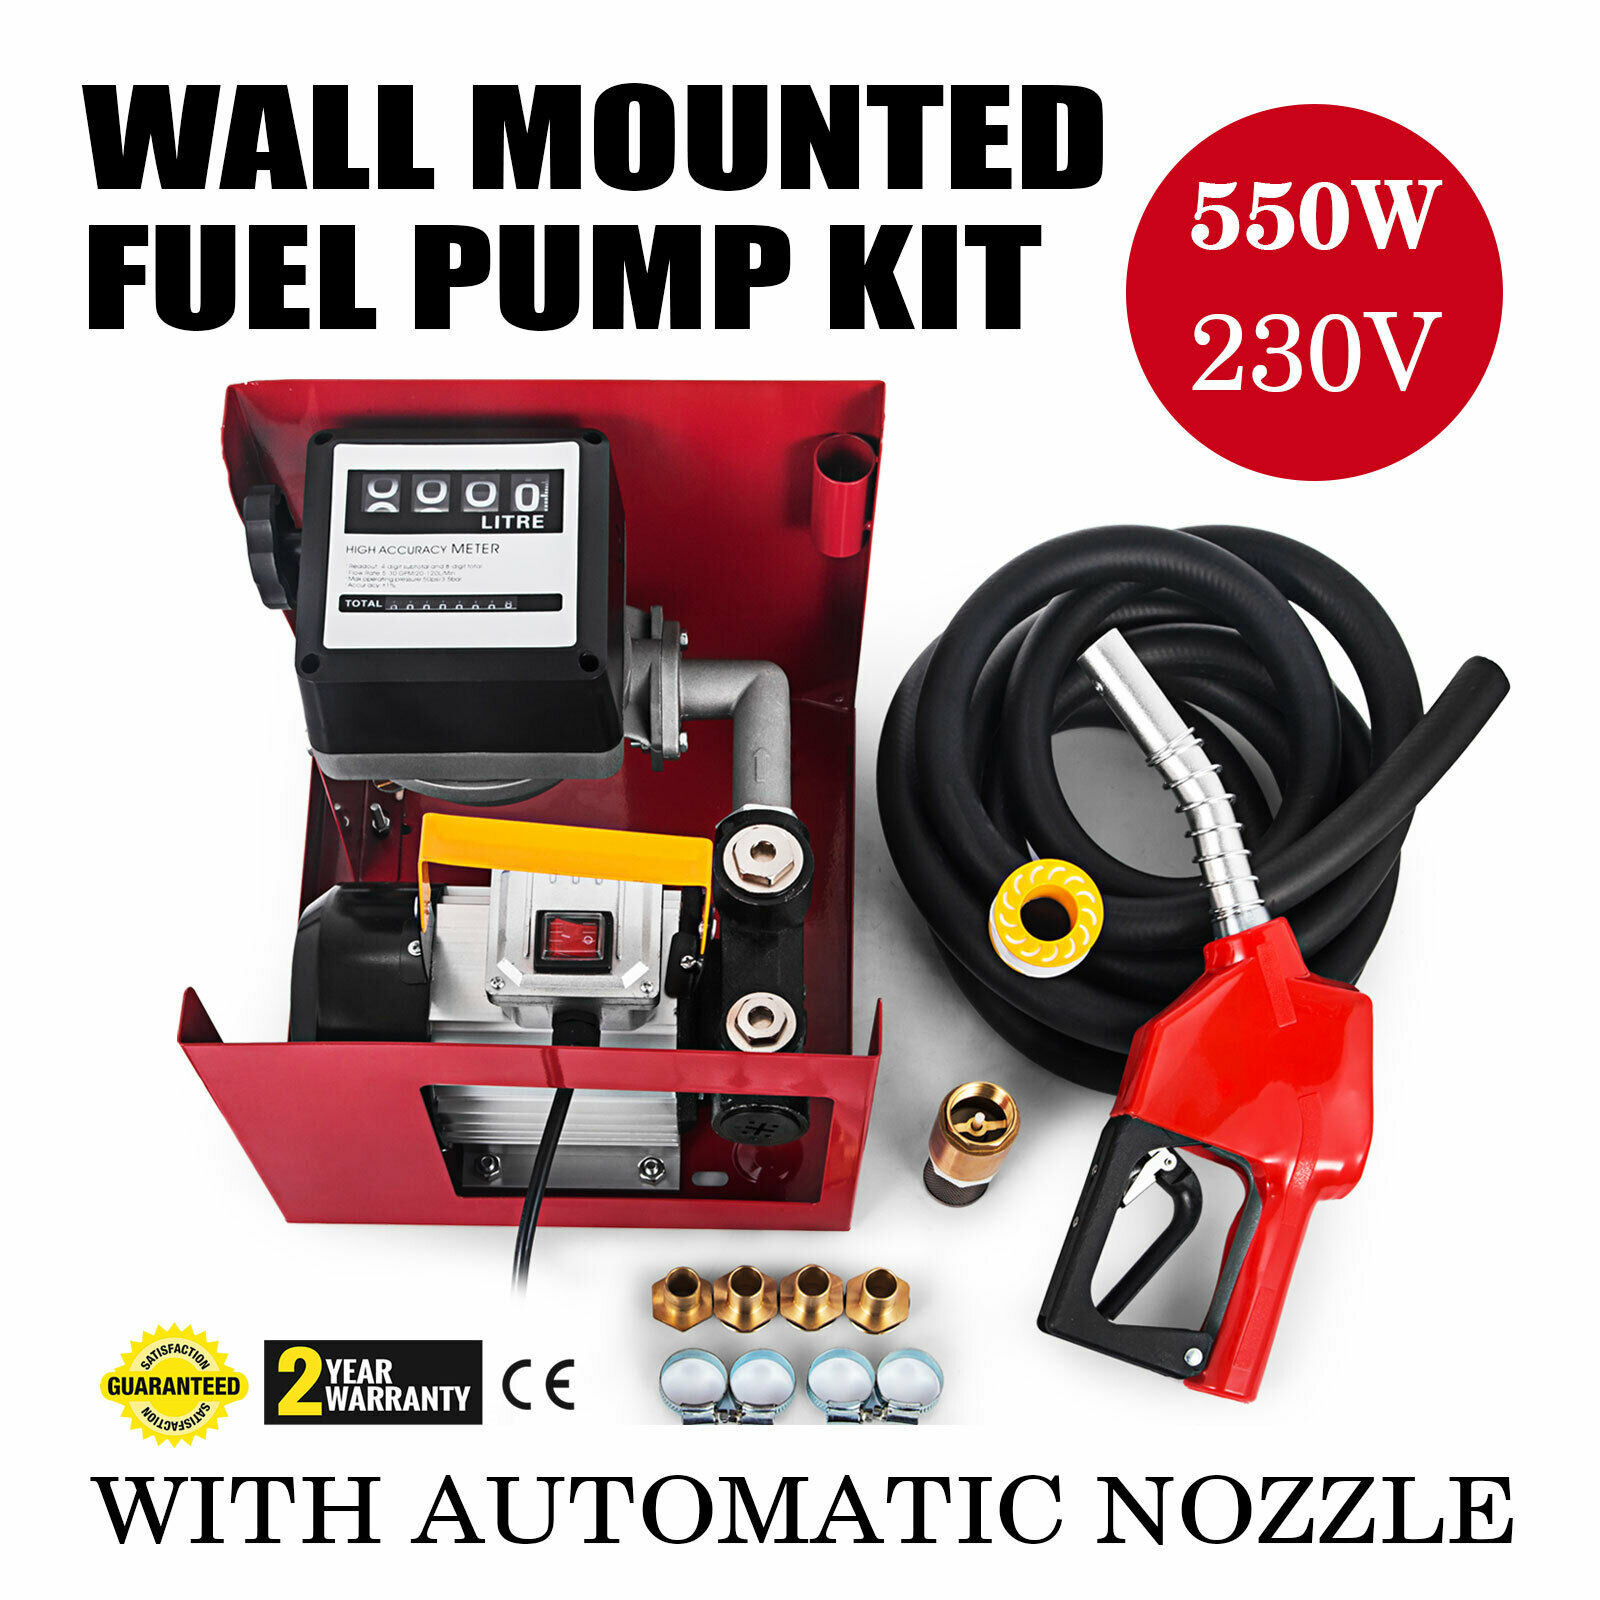 AUTOMATIC UPDATED Machine AC Metering Diesel Transfer Pump 230V WALL MOUNTED